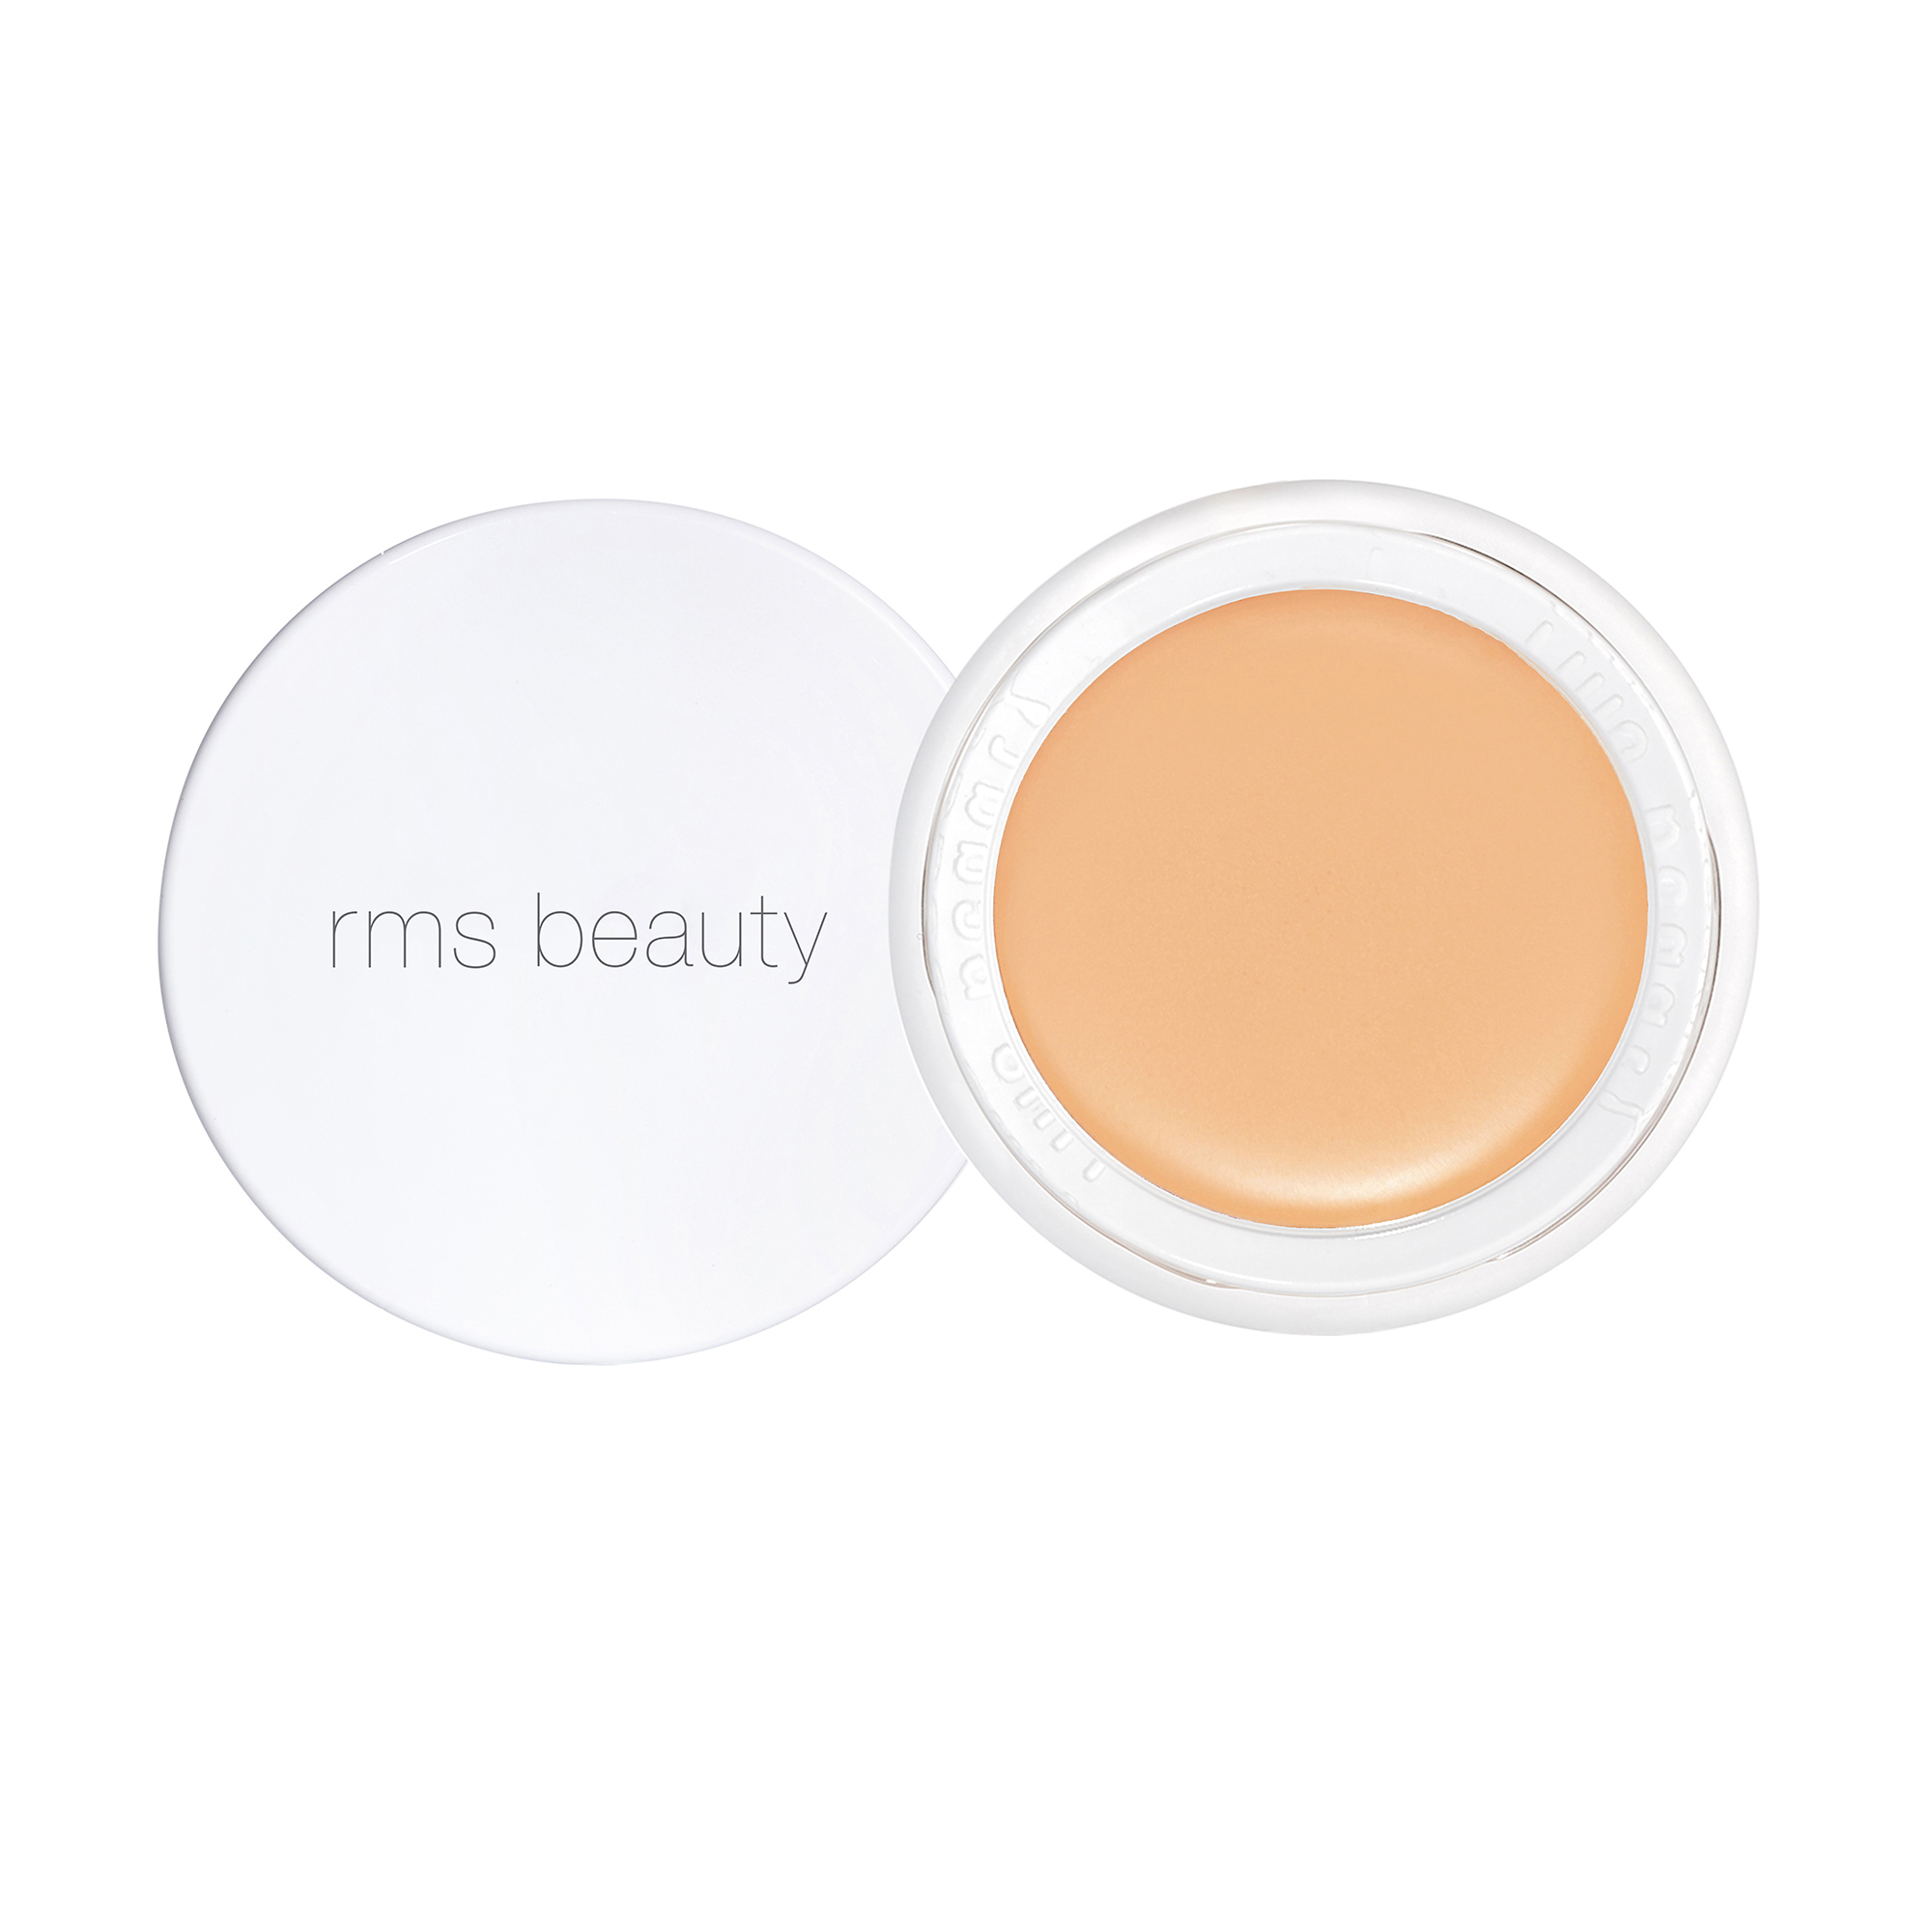 RMS  BEAUTY  КРЕМ КОНСИЛЕР ДЛЯ ЛИЦА  UN COVER-UP CREAM CONCEALER  22